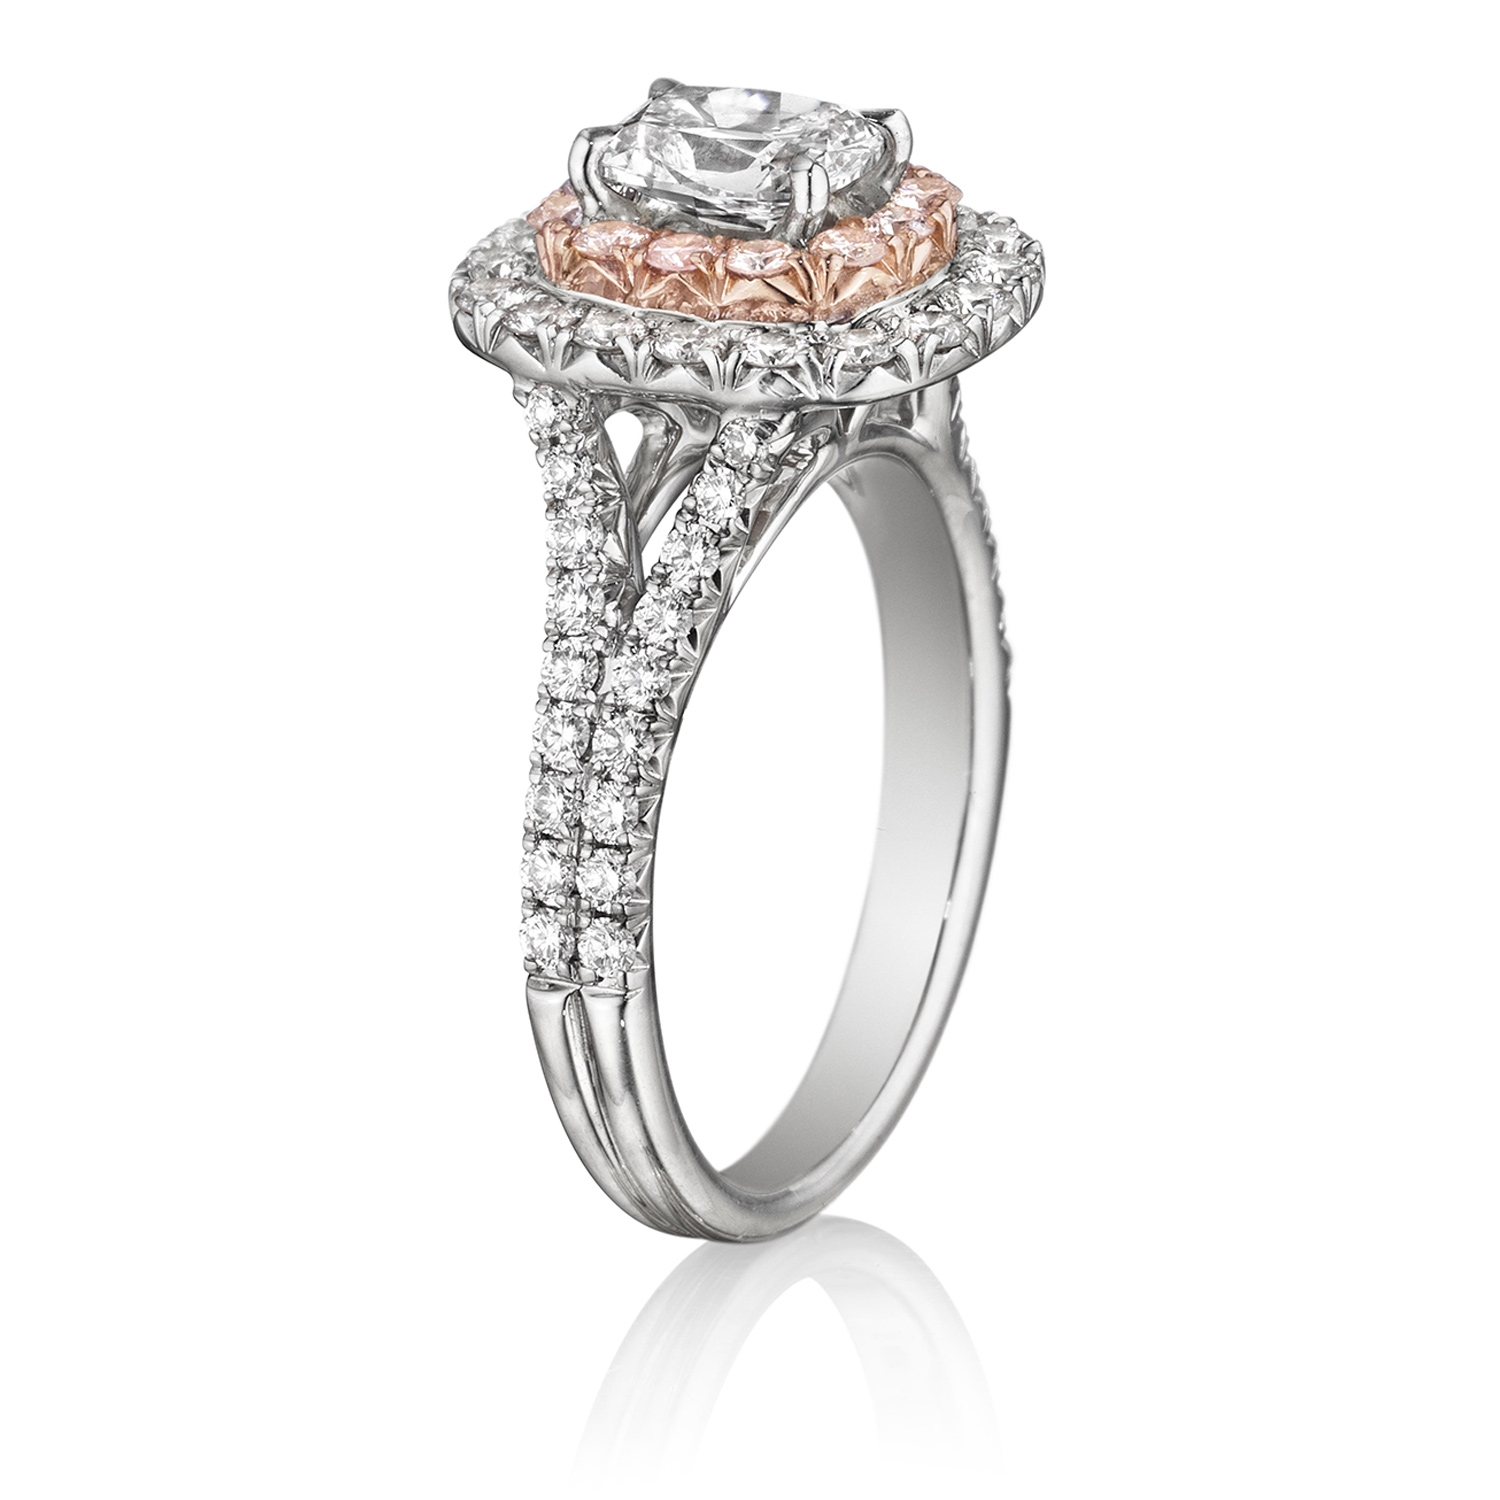 Henri Daussi AQSP Cushion Double Halo with Pink Diamonds Engagement Ring Alternative View 1